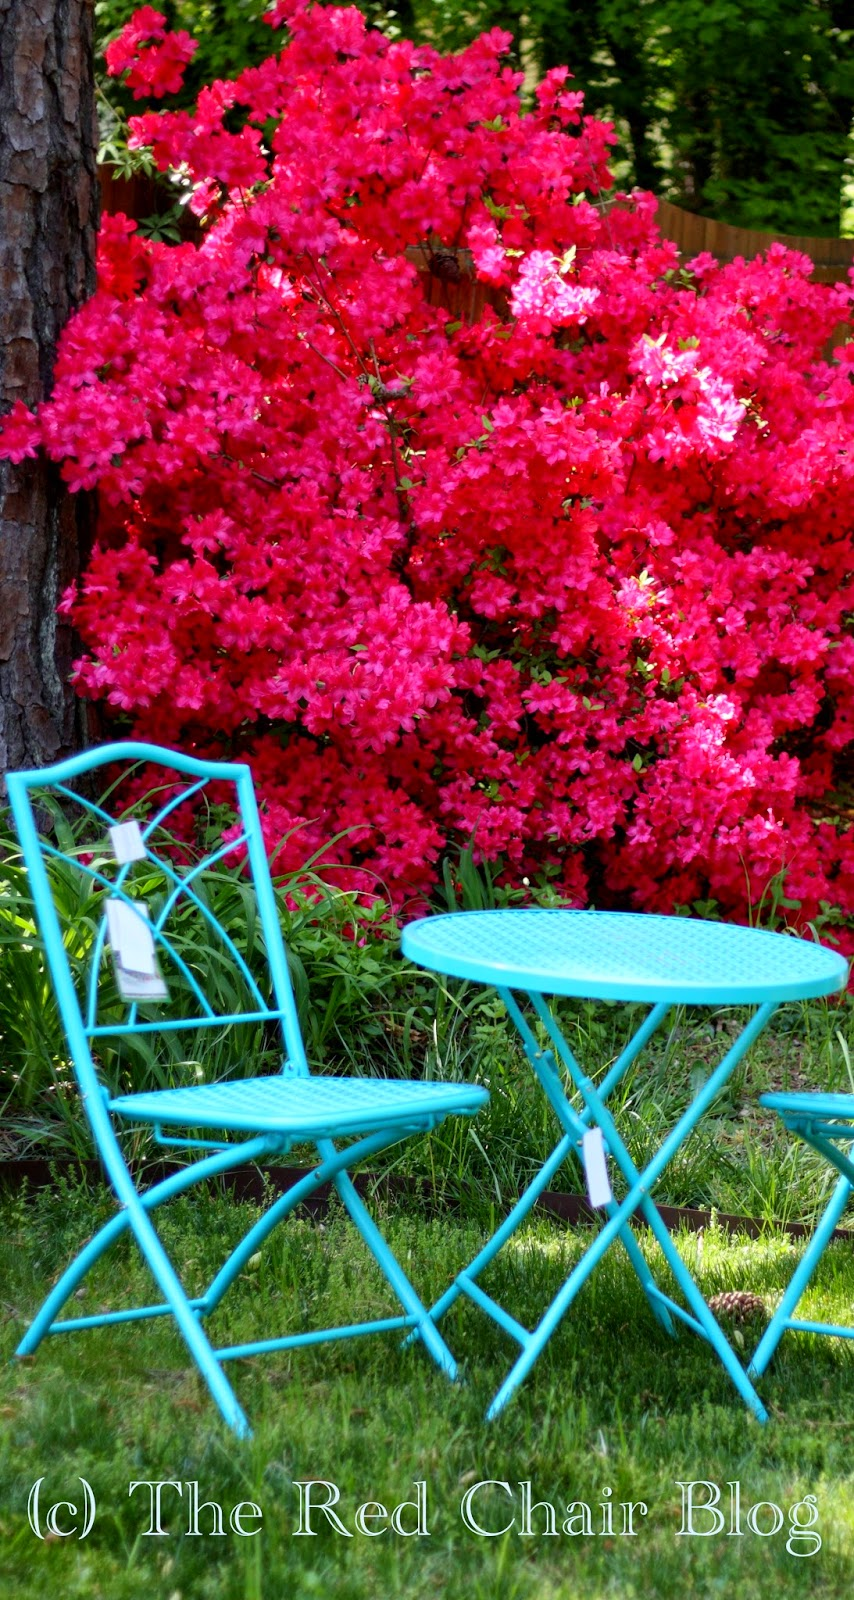 HD Designs aqua turquoise blue folding bistro set with azaleas at The Red Chair Blog